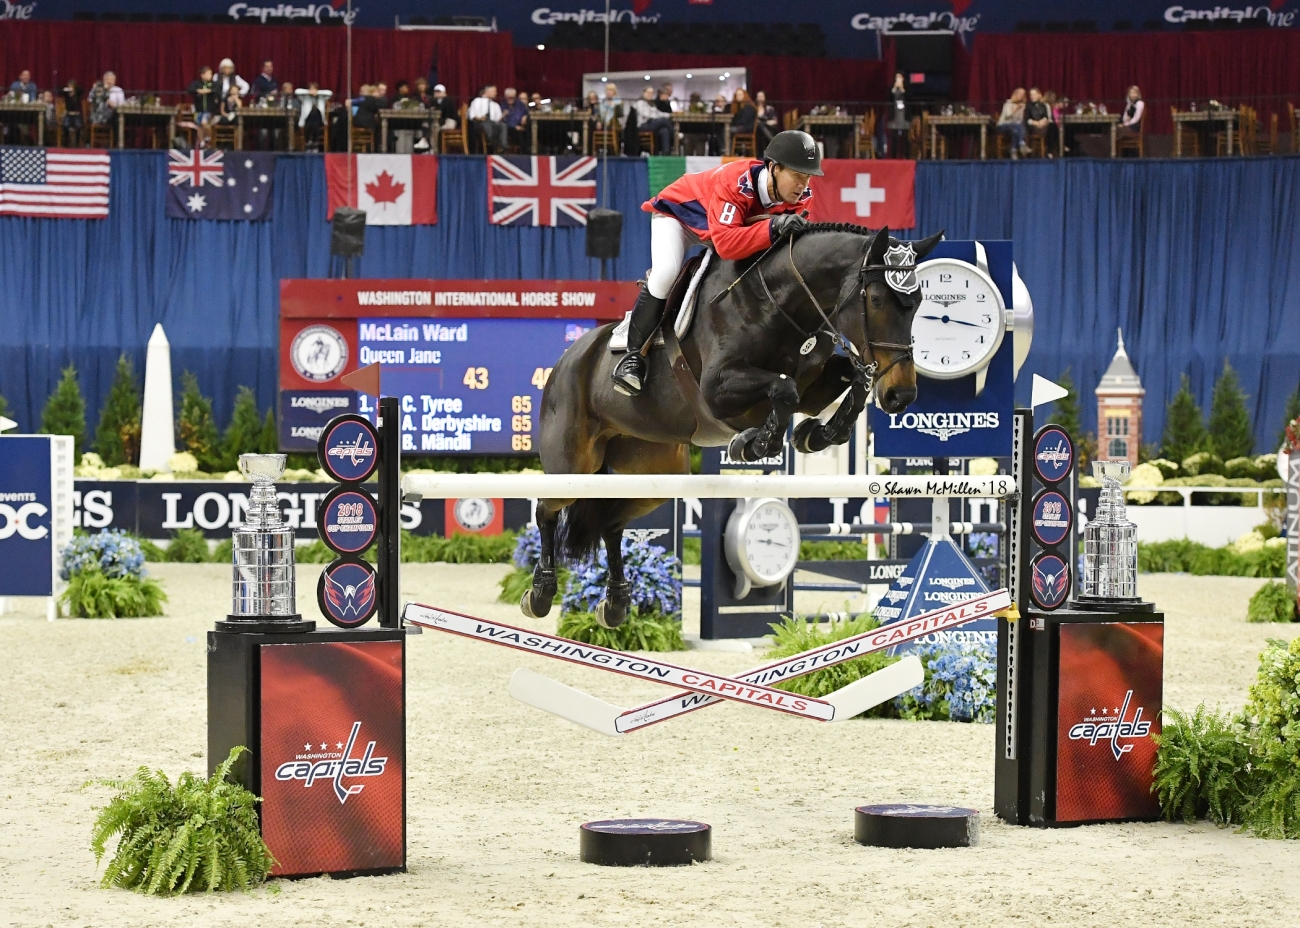 2018.10.16.99.99 WIHS CSI 4 Accumulator McLain Ward & Queen Jane Shawn McMillen.jpg